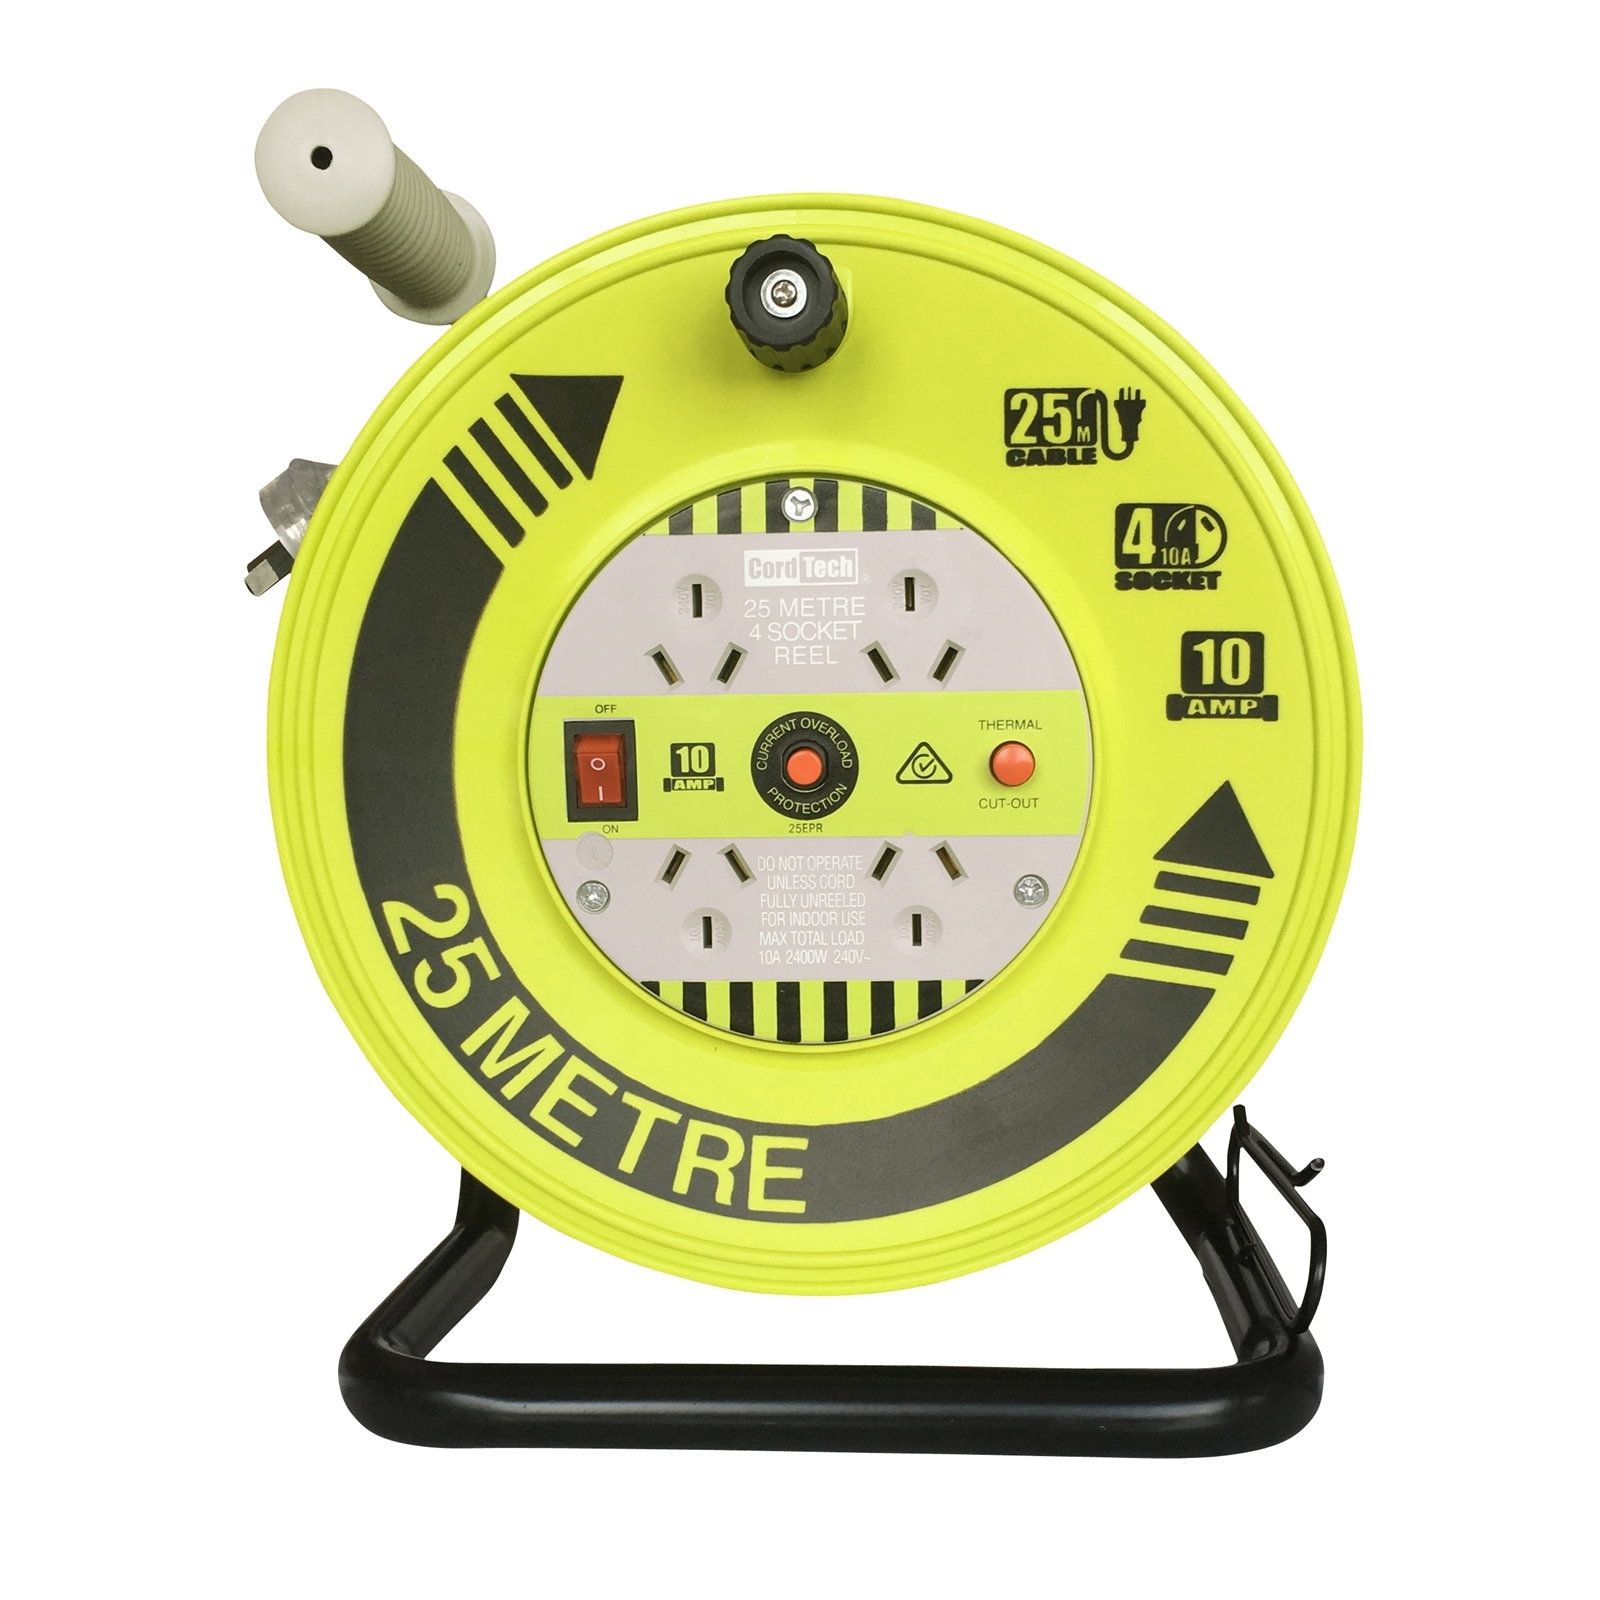 CordTech 25m Heavy Duty Cable Reel with 4 outlets